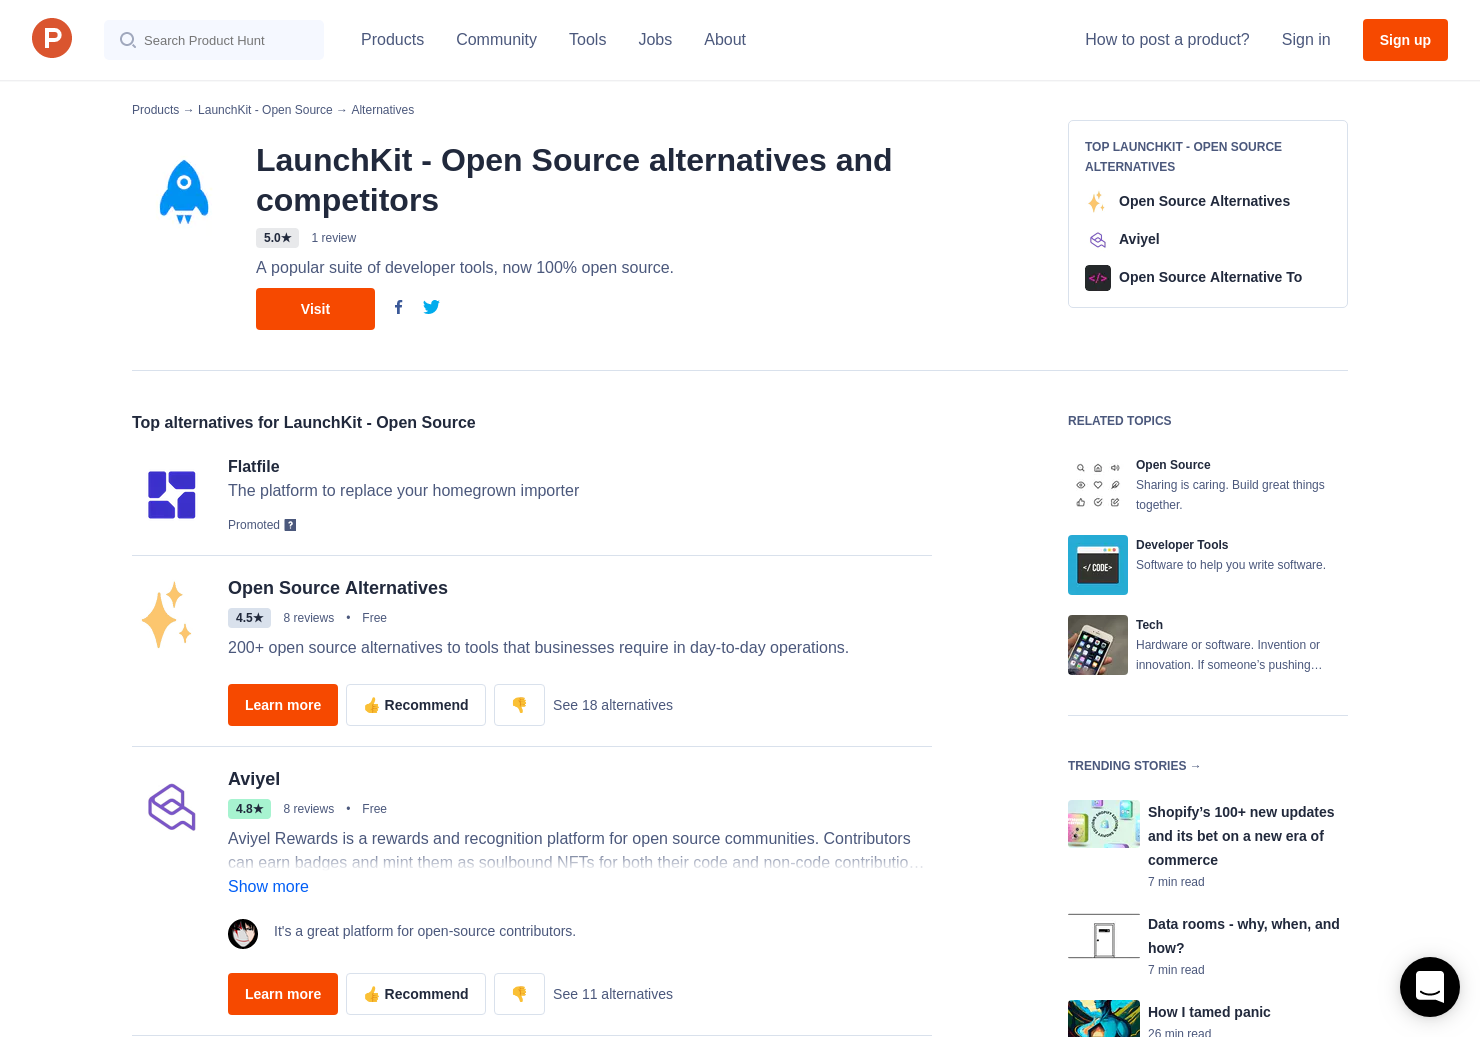 12 Alternatives to LaunchKit - Open Source | Product Hunt